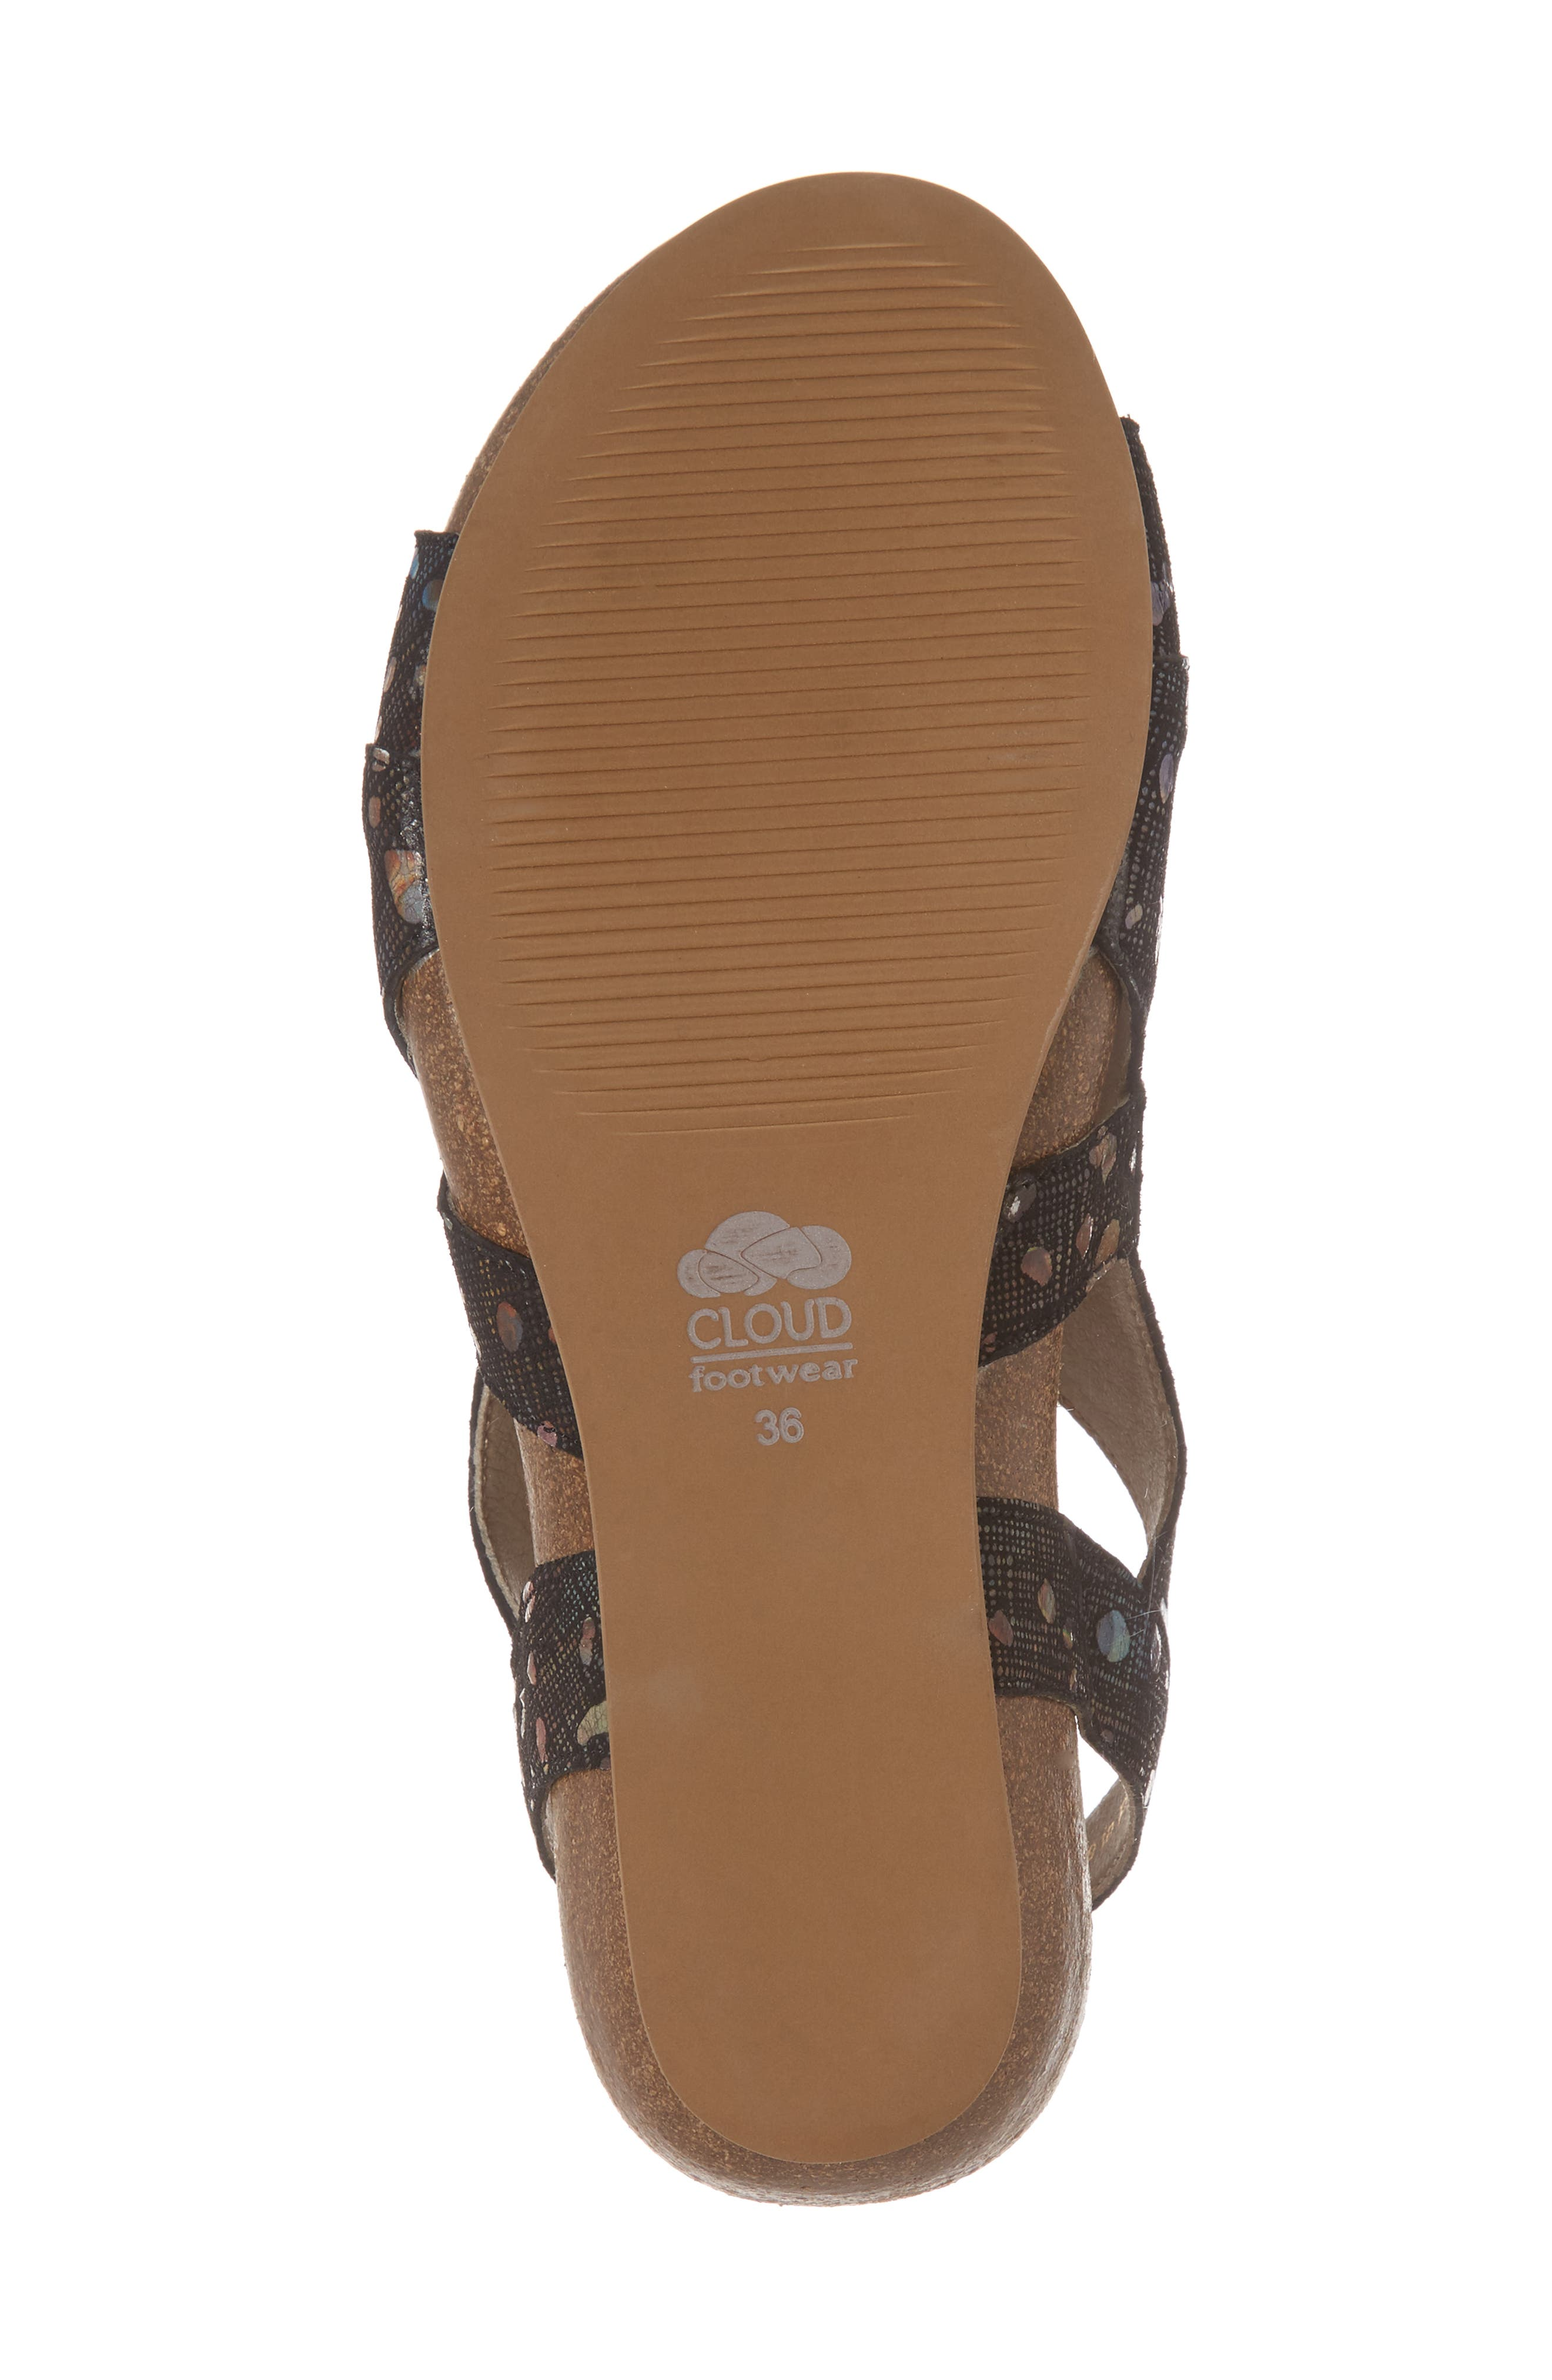 Duffy Wedge Sandal,                             Alternate thumbnail 6, color,                             BUBBLE LEATHER